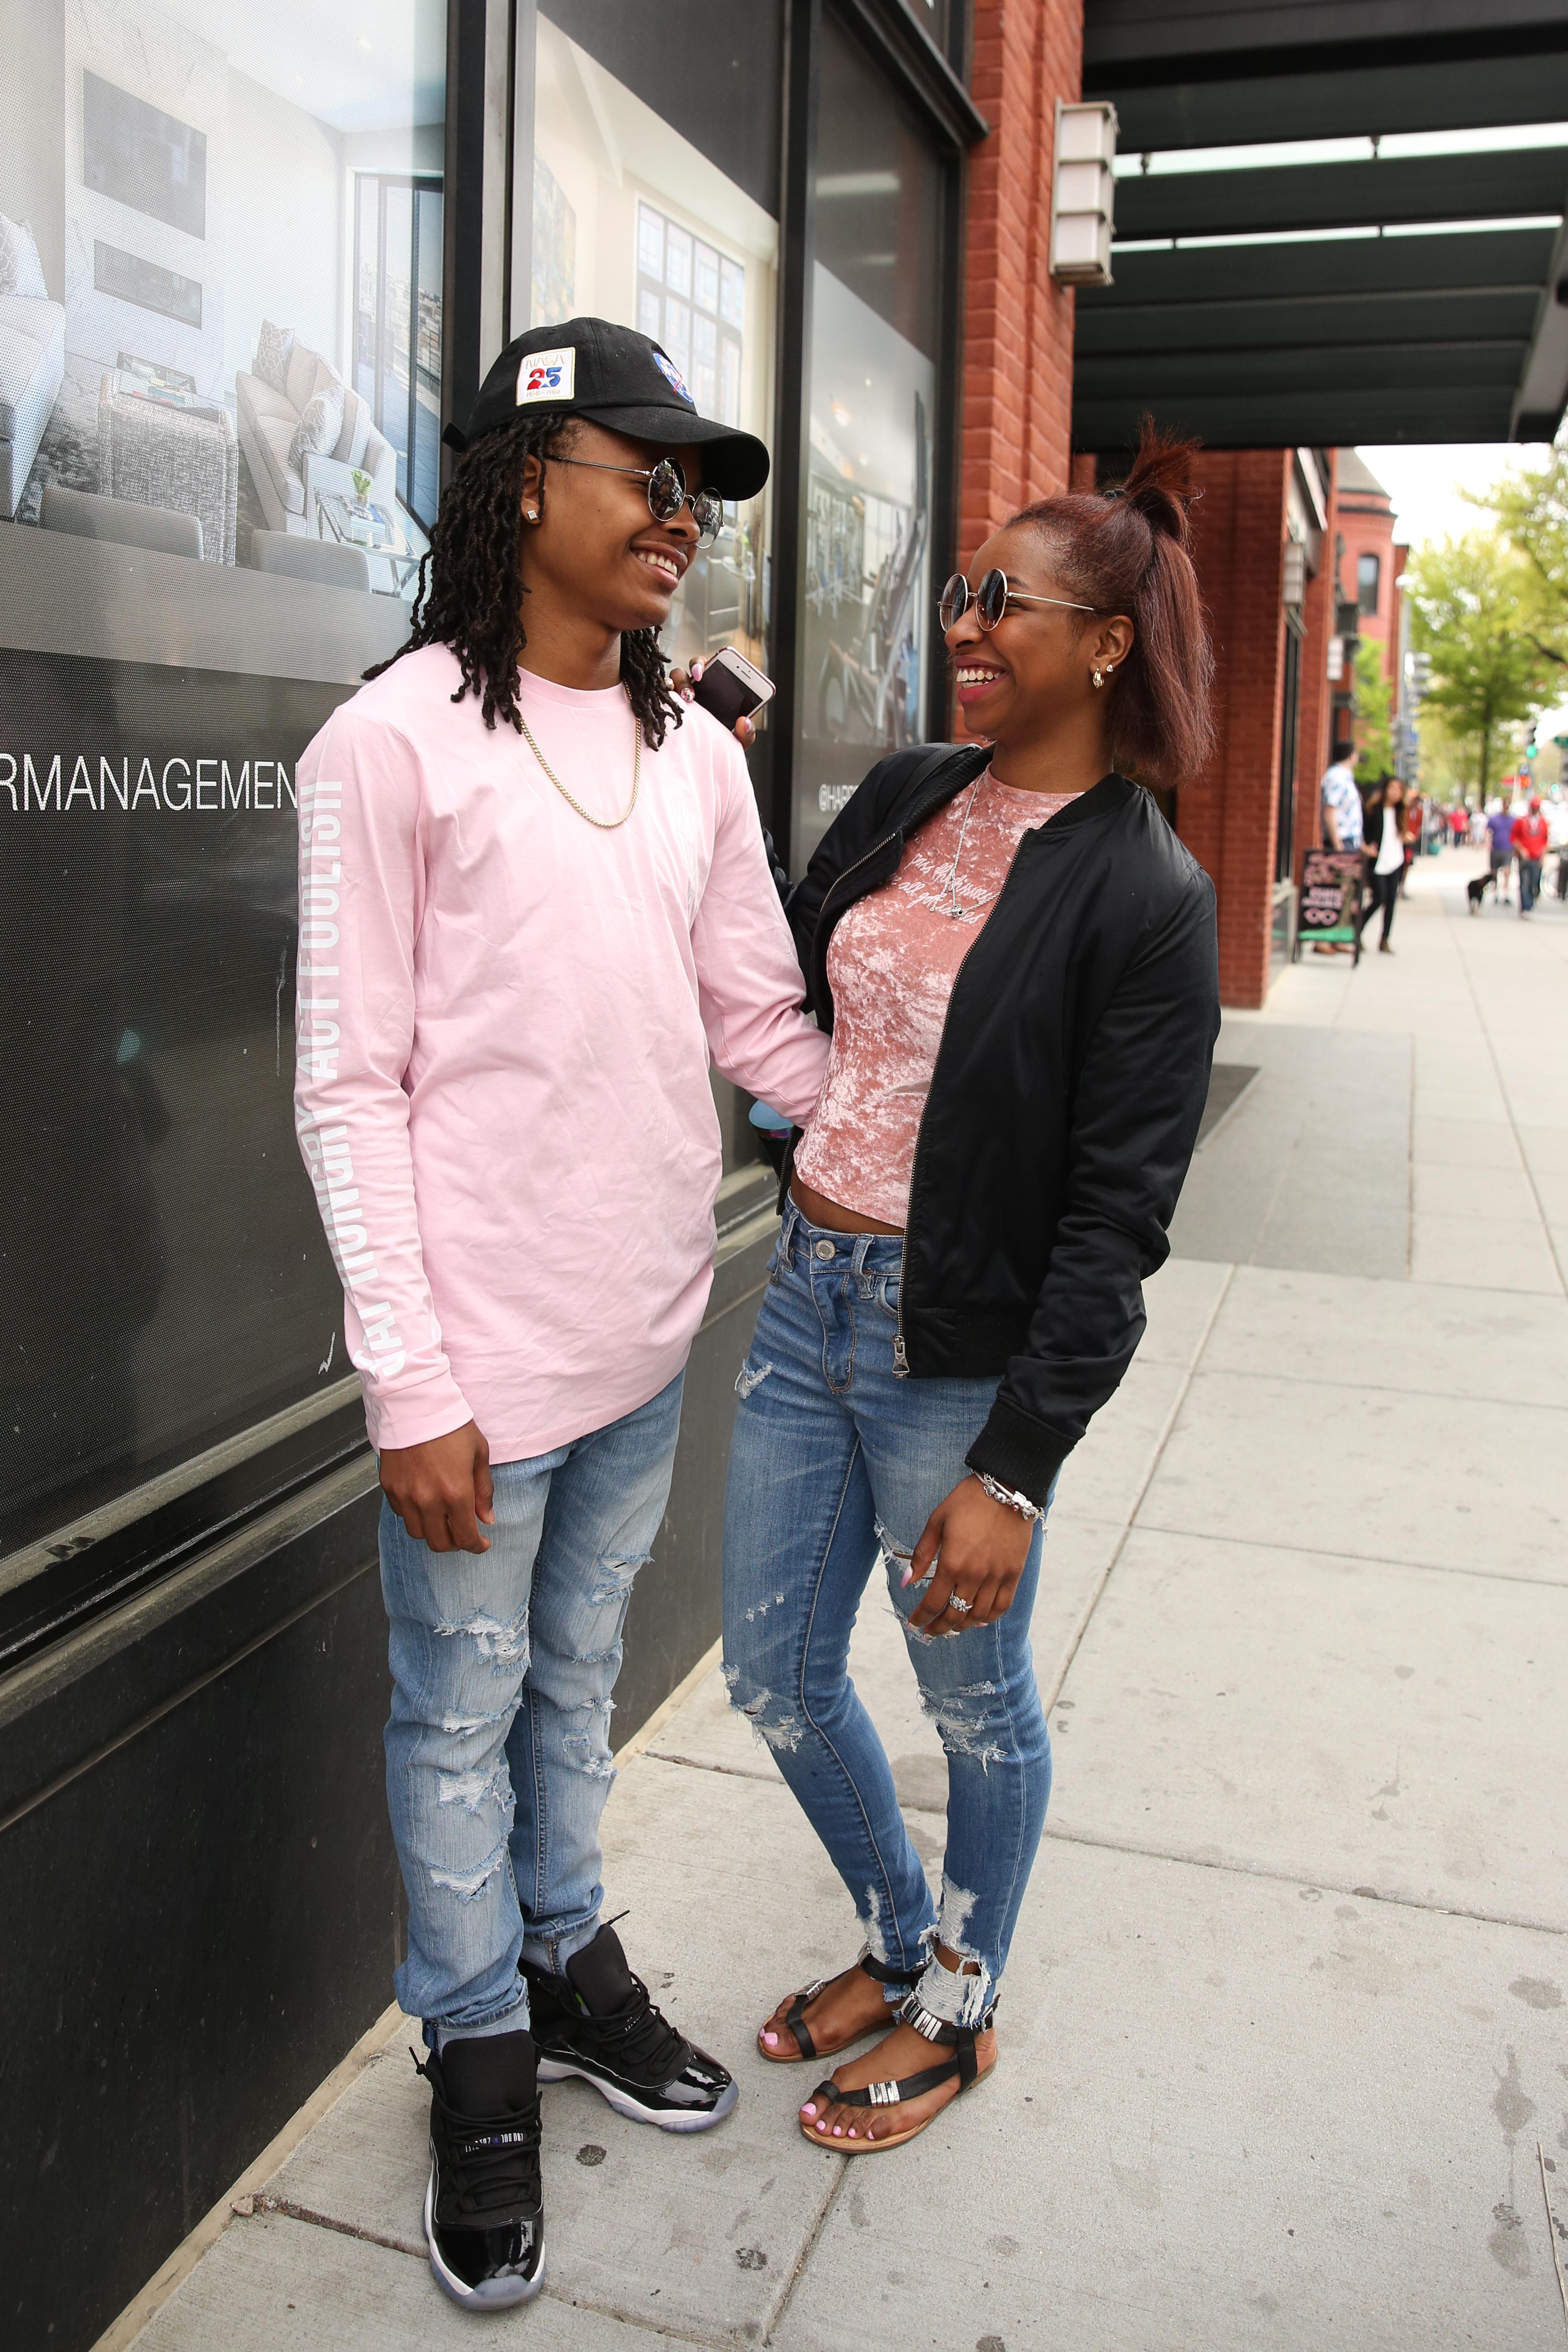 Millennial pink is an overplayed term, but it looks great on Denasia Collins and Obasi Hosang.(Amanda Andrade-Rhoades/DC Refined)